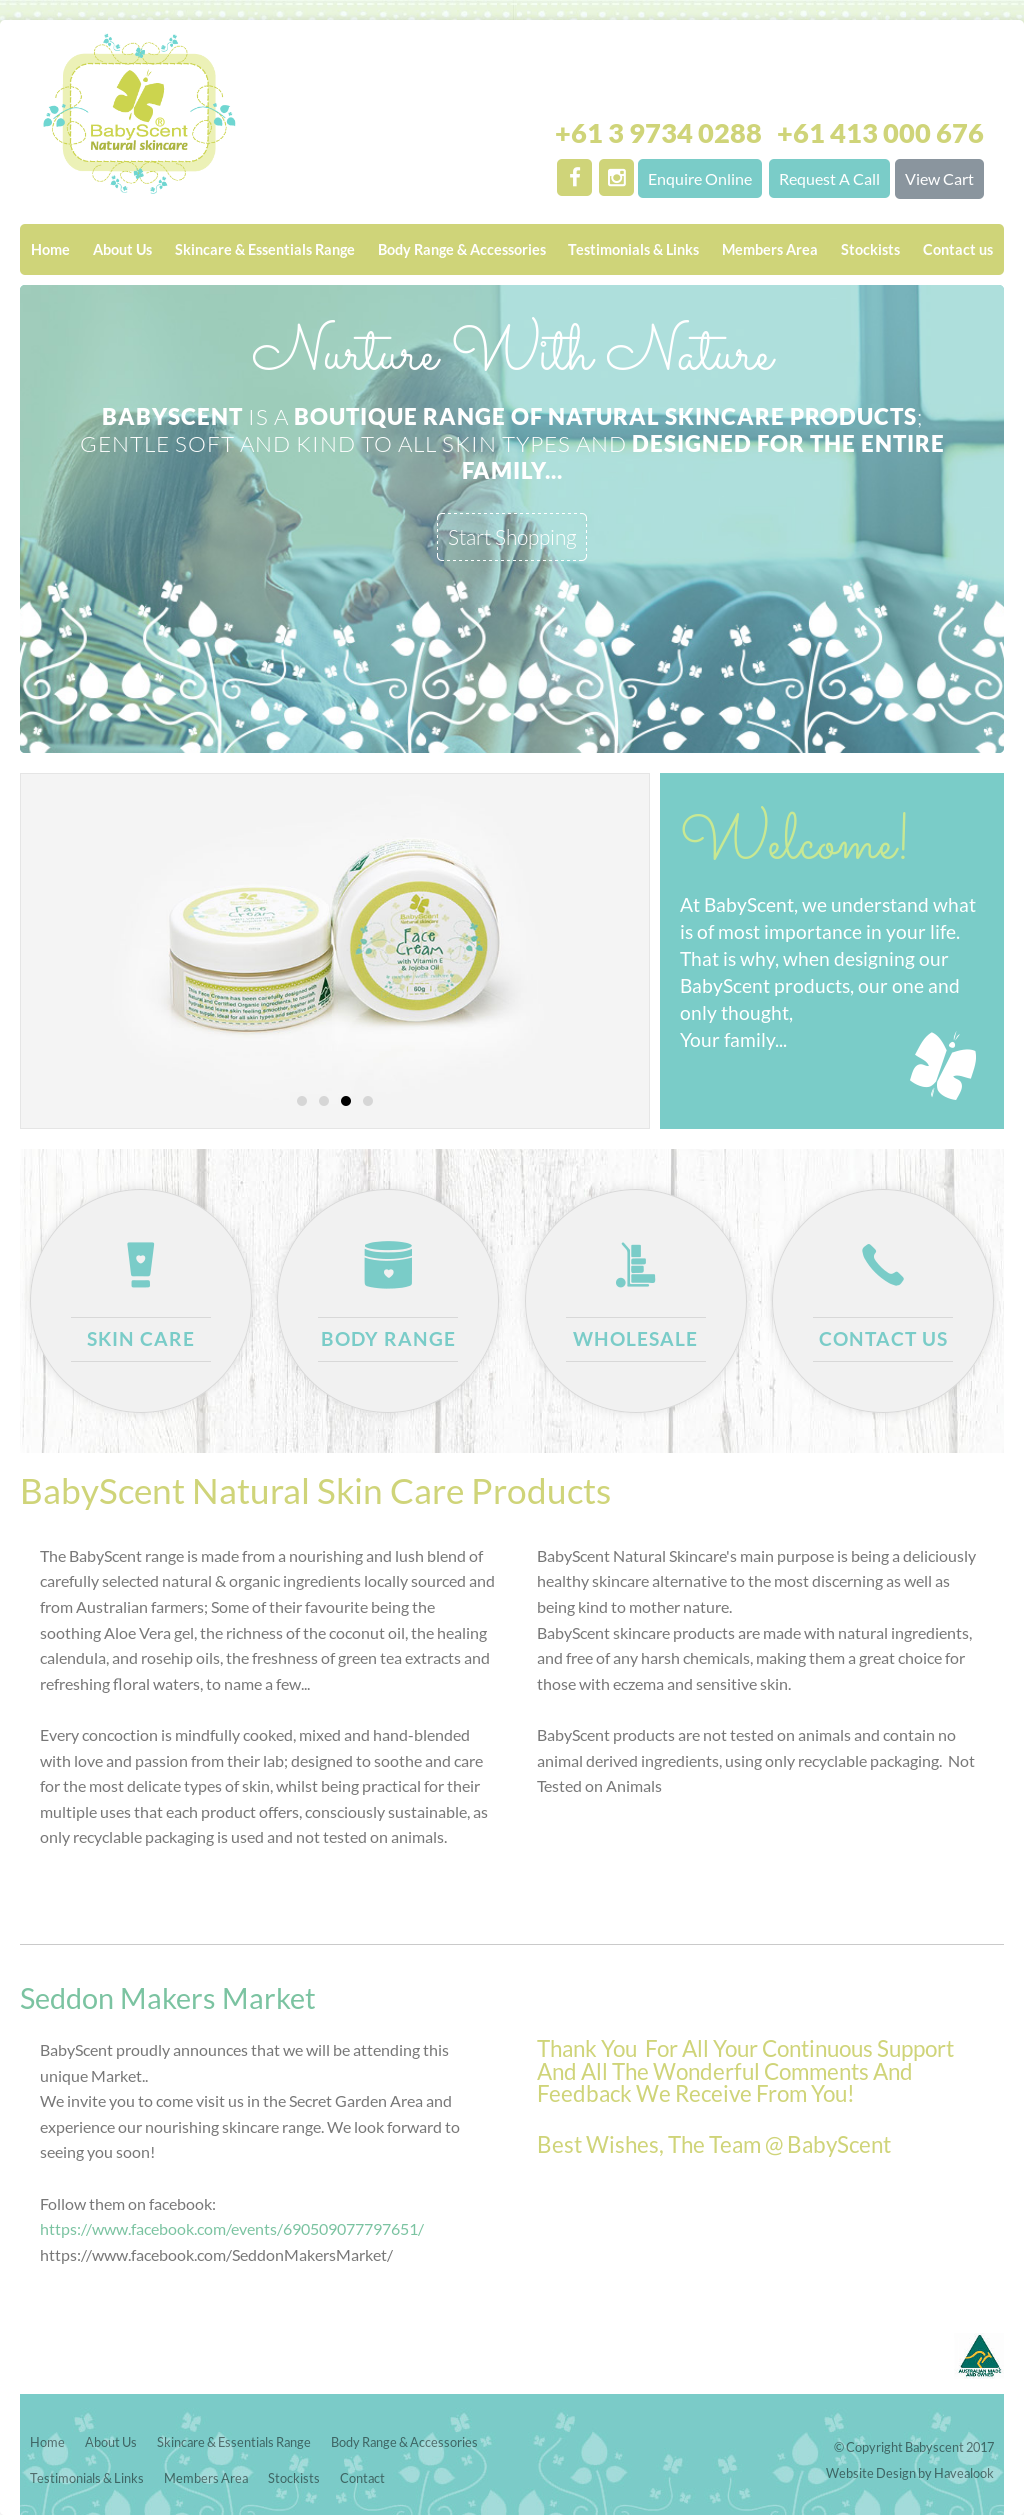 Babyscent Competitors, Revenue and Employees - Owler Company Profile